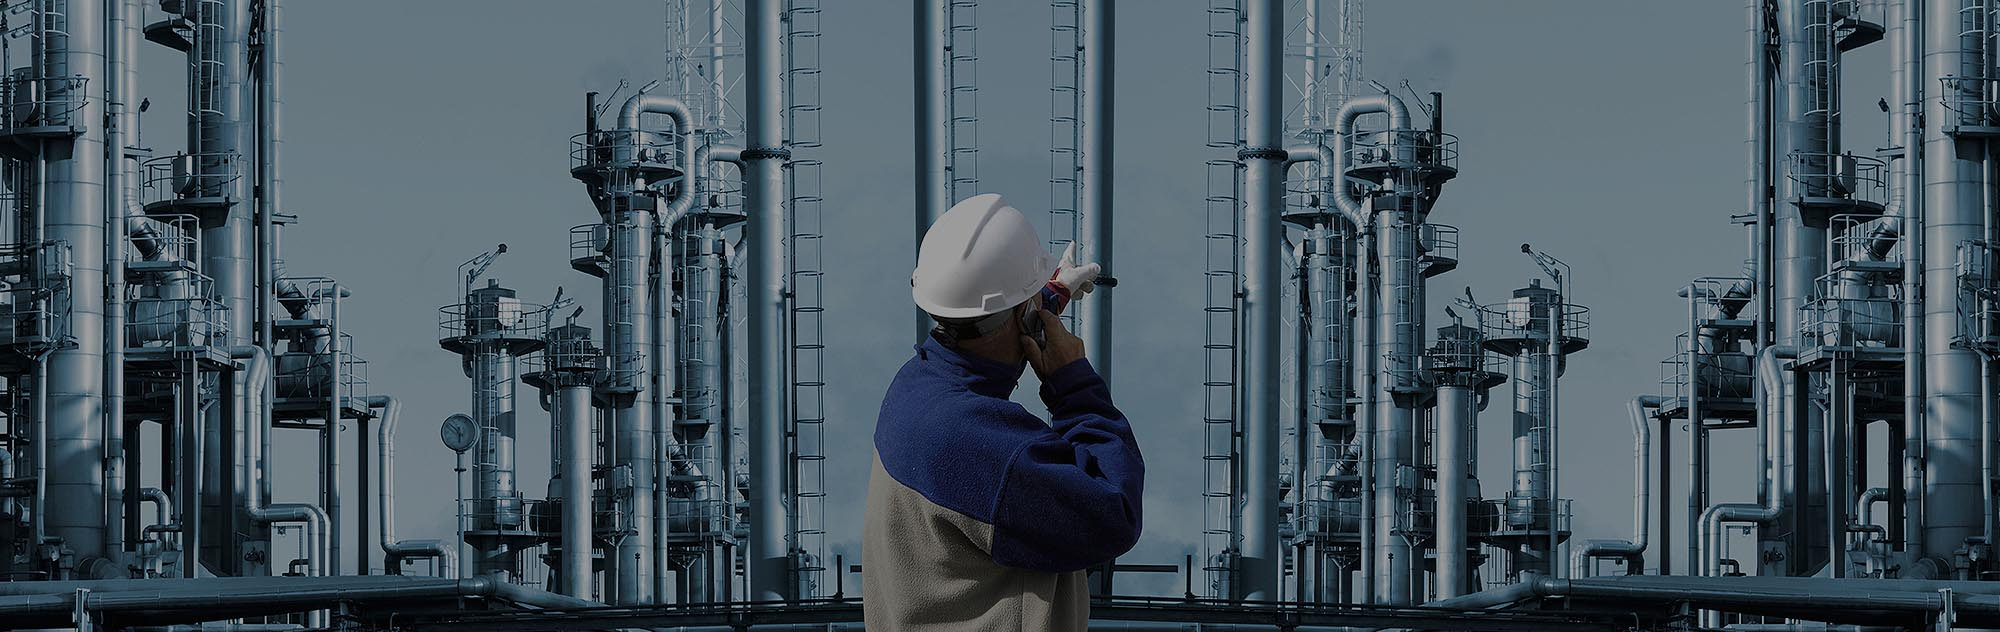 Oil and Gas Service Contractors in the ASEAN Region